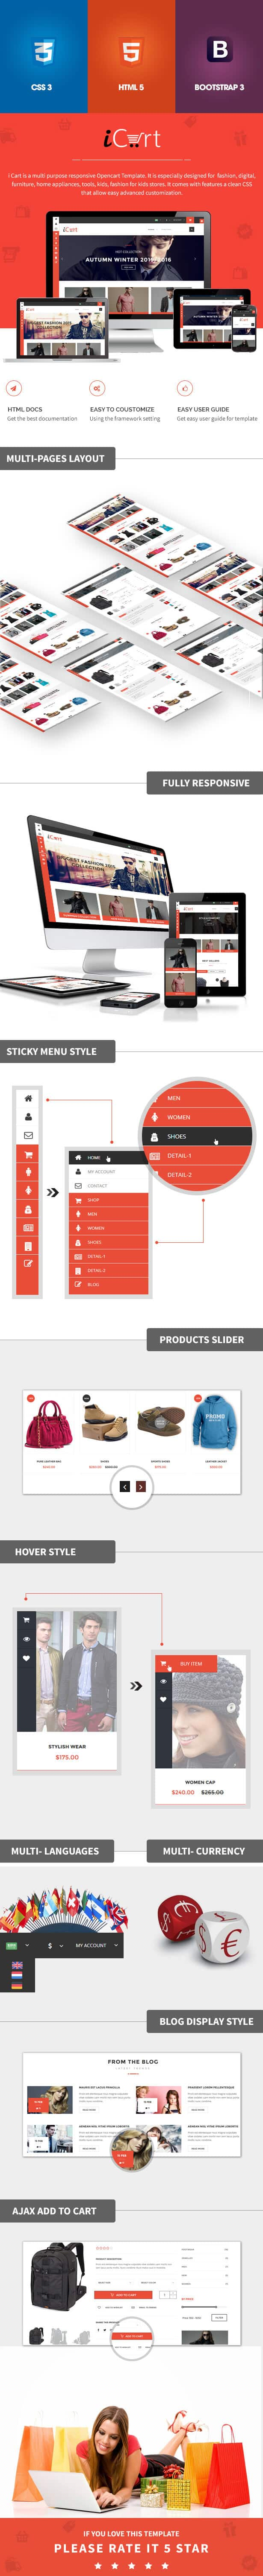 ECommerece html5 template